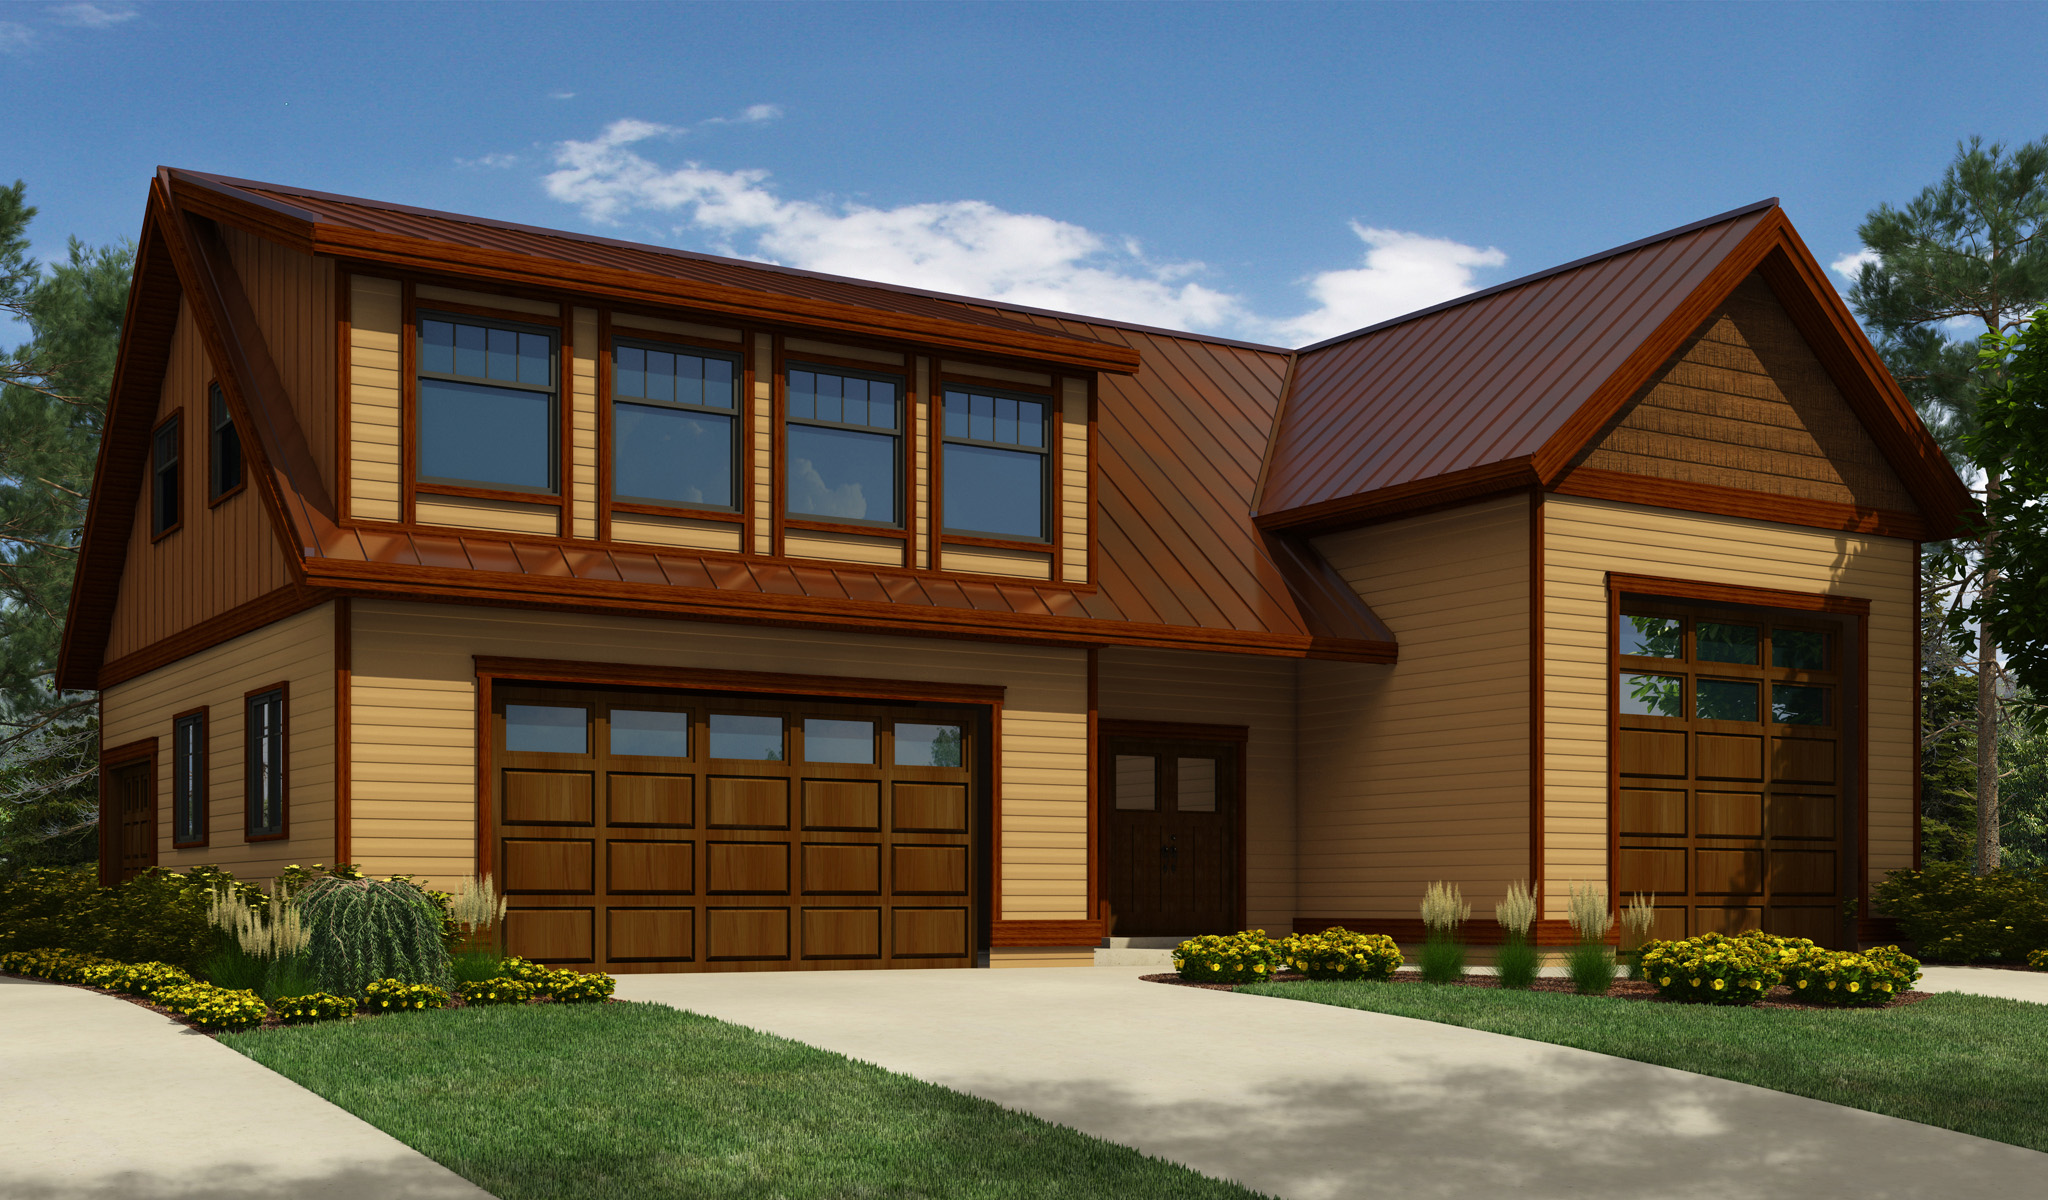 Rv Garage Plans With Apartments: Architectural Designs